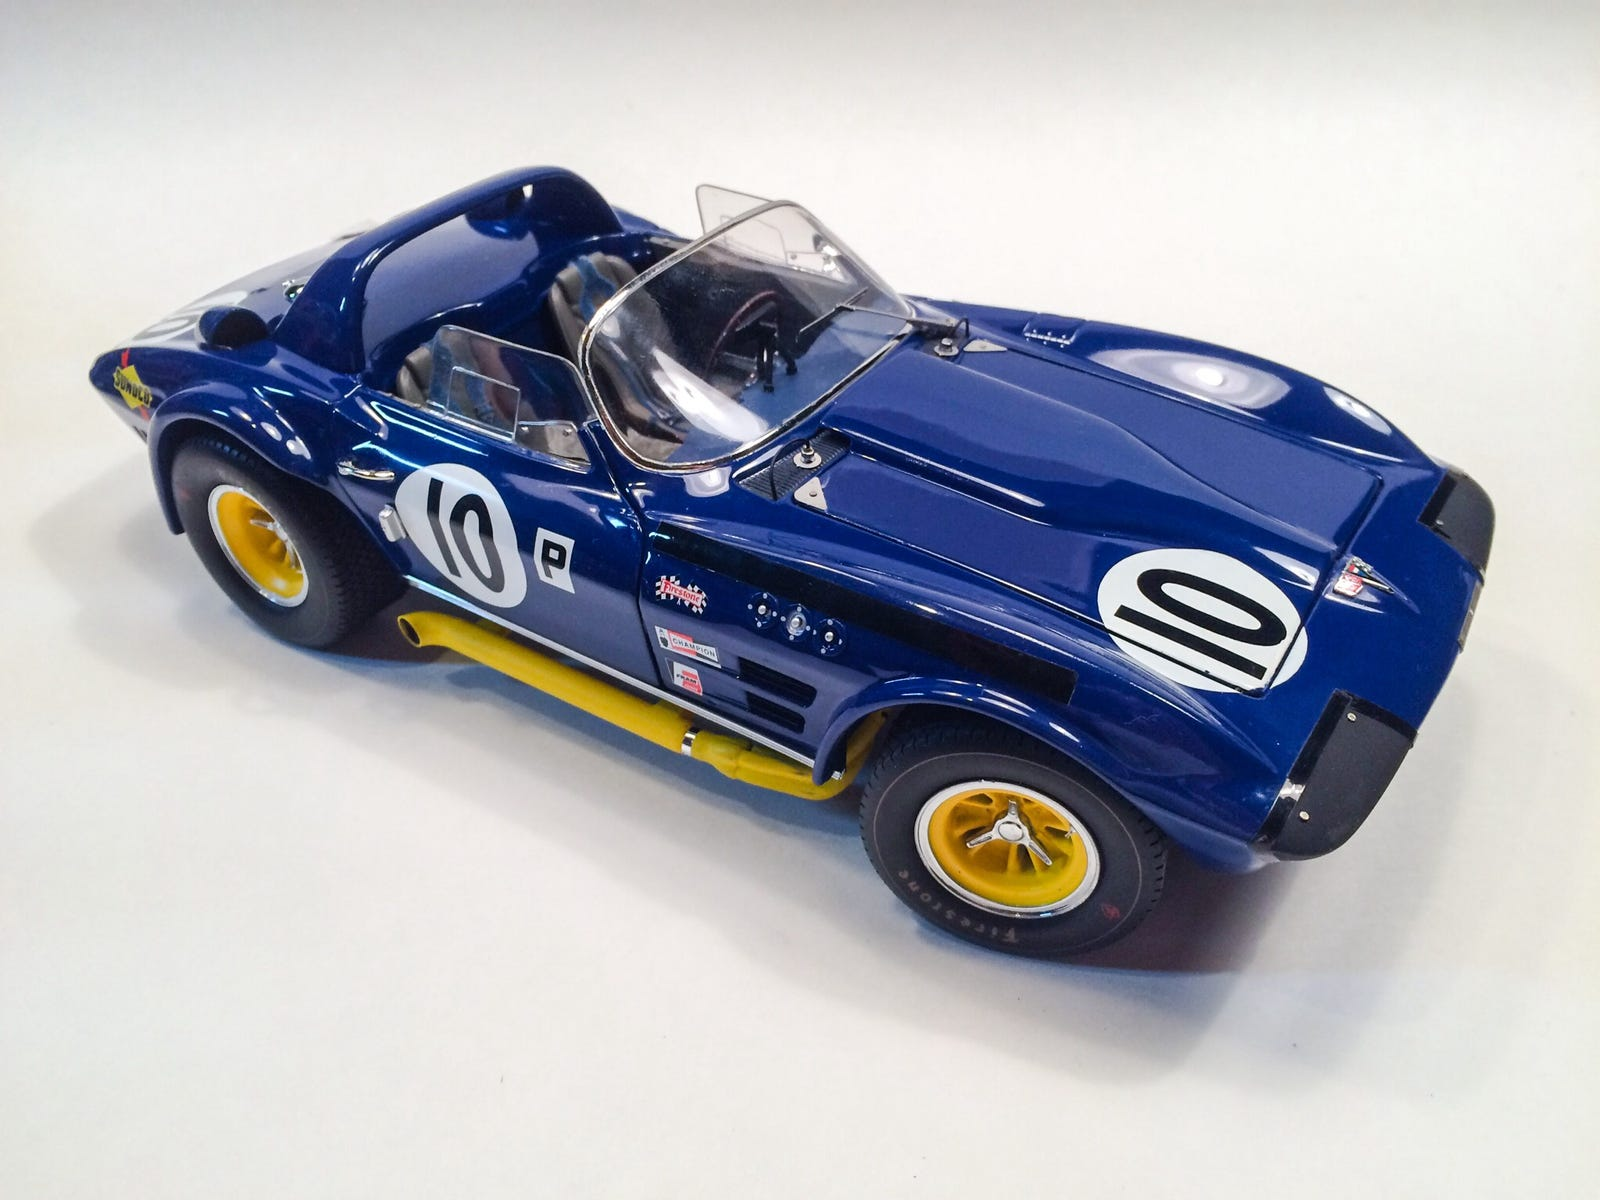 Lot 26: 1:18 Scale Exoto Corvette Grand Sport $75 shipped (US). Some paint rash on hood. LaLD review here: